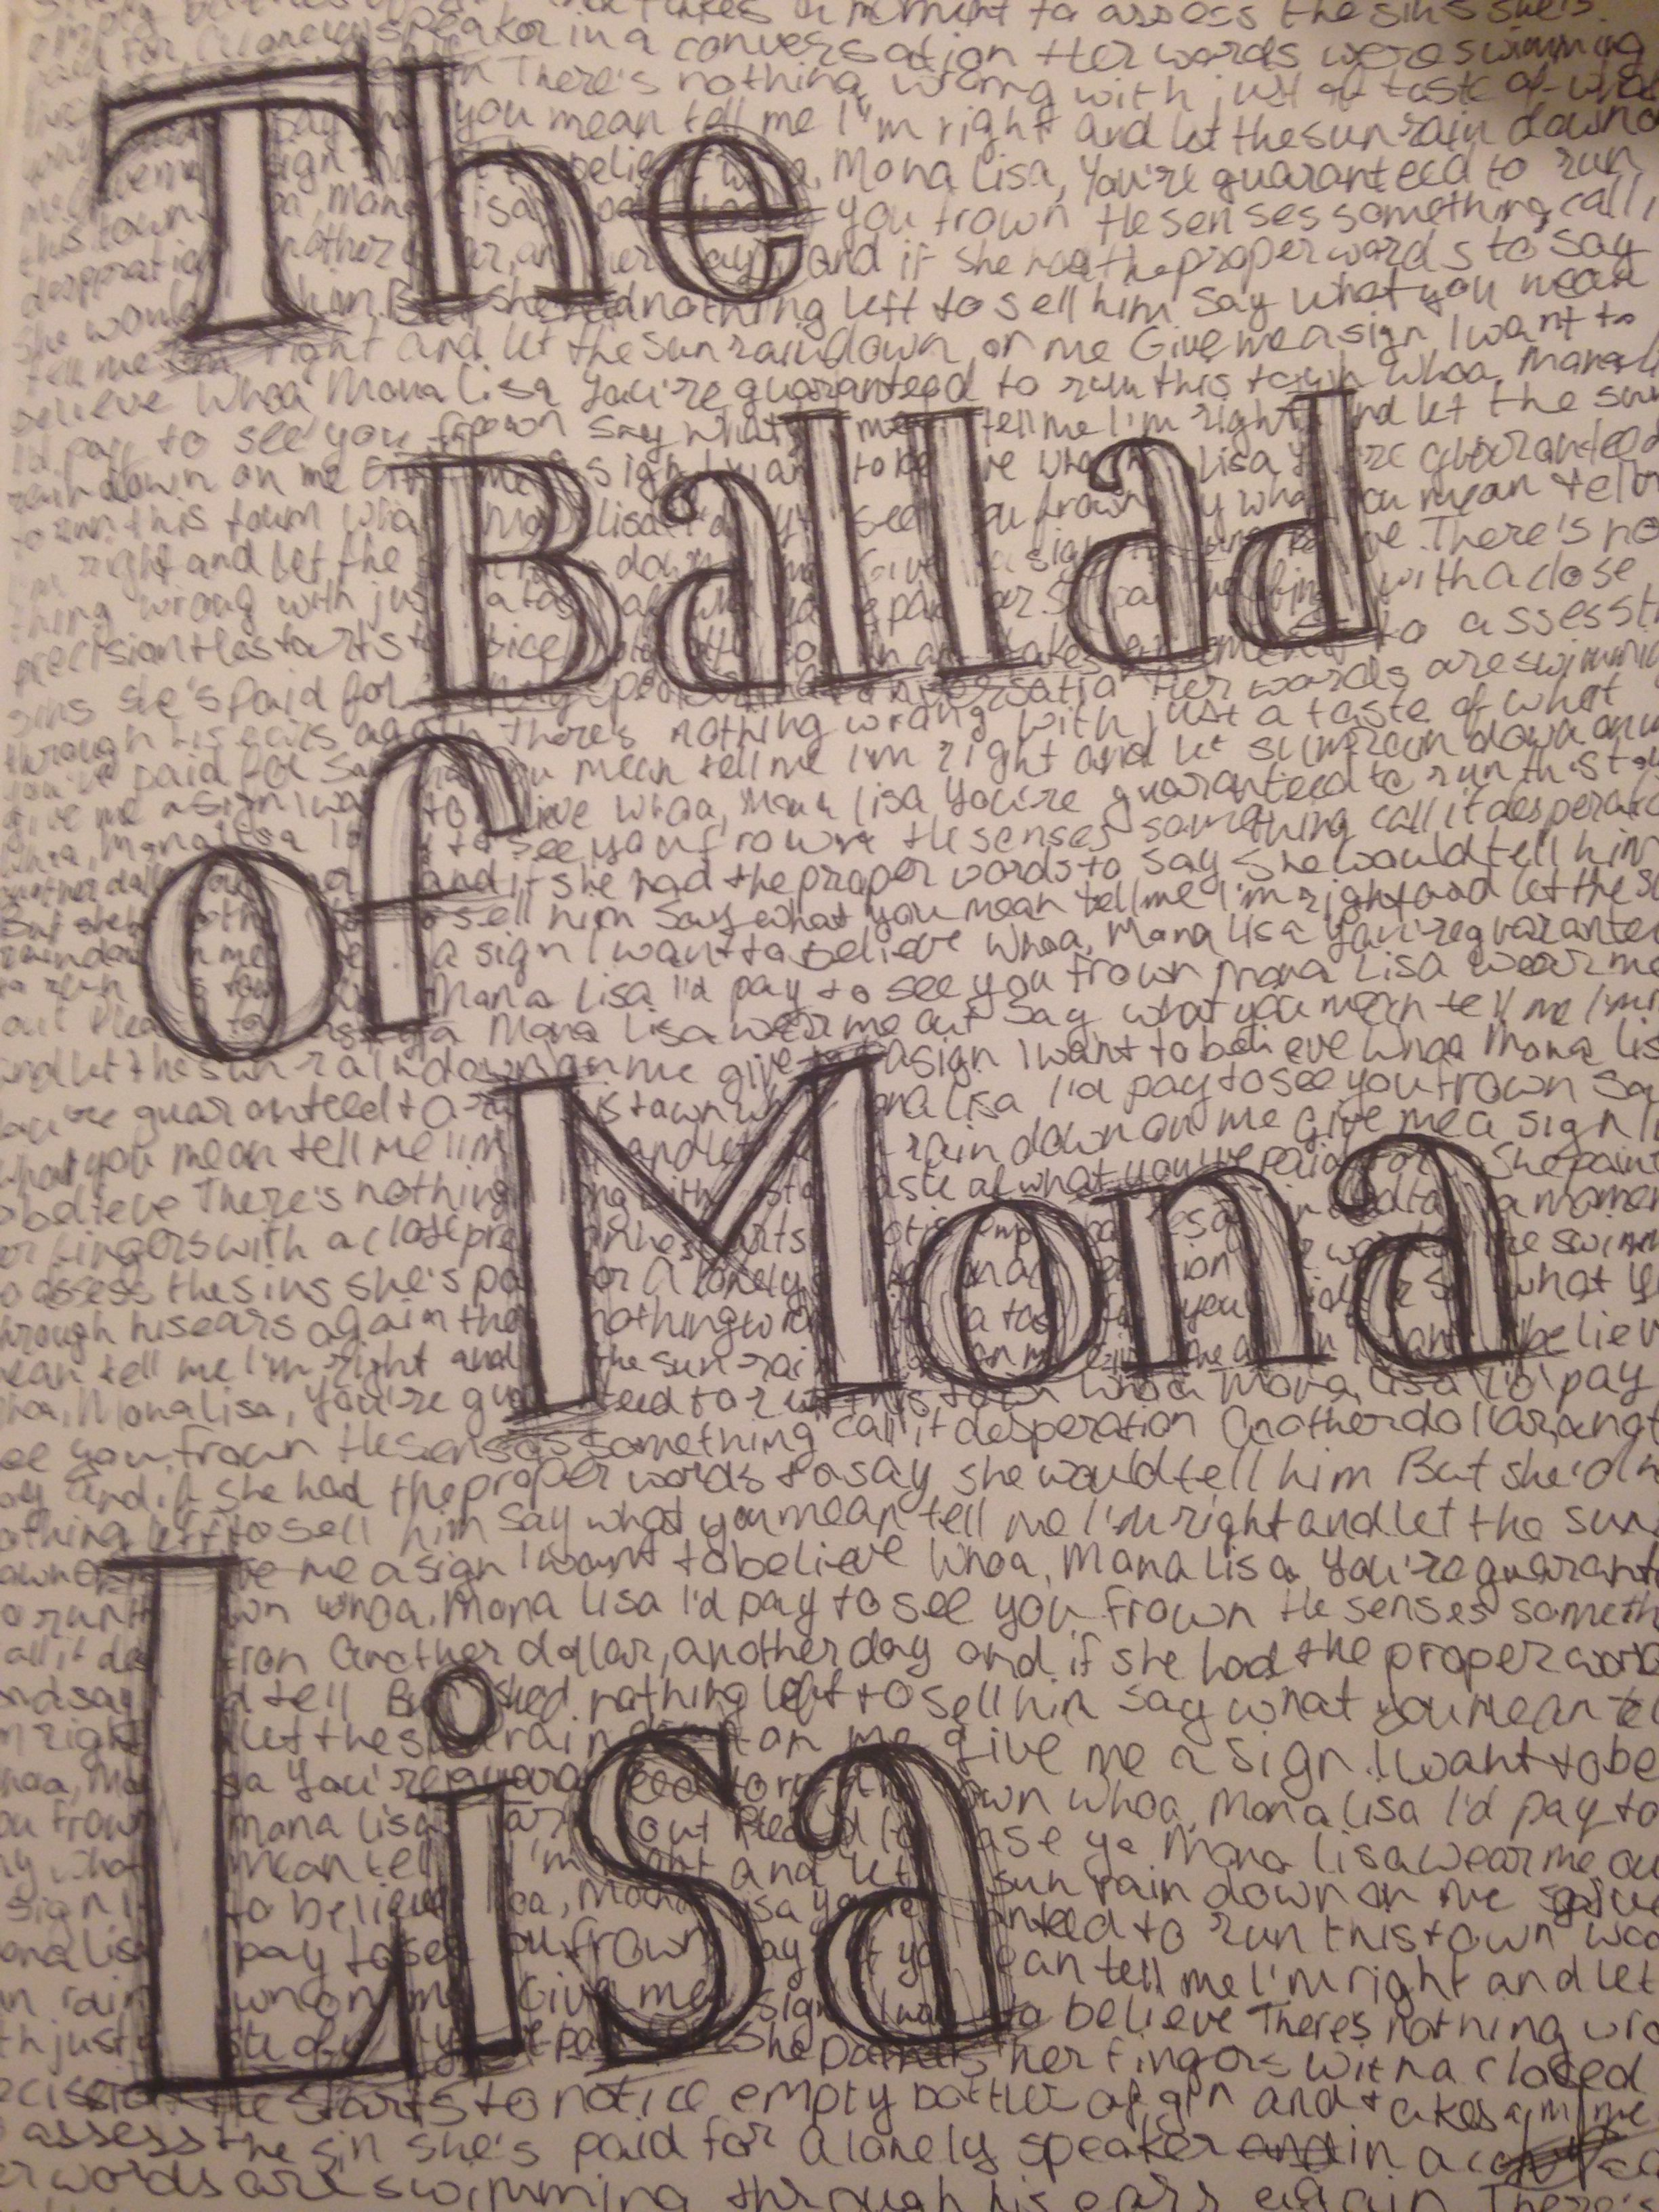 Sketching song titles and lyrics to kill some time is always fun sketching song titles and lyrics to kill some time is always fun the ballad of mona lisa panic at the discocredit to whoever put in the effort hexwebz Gallery